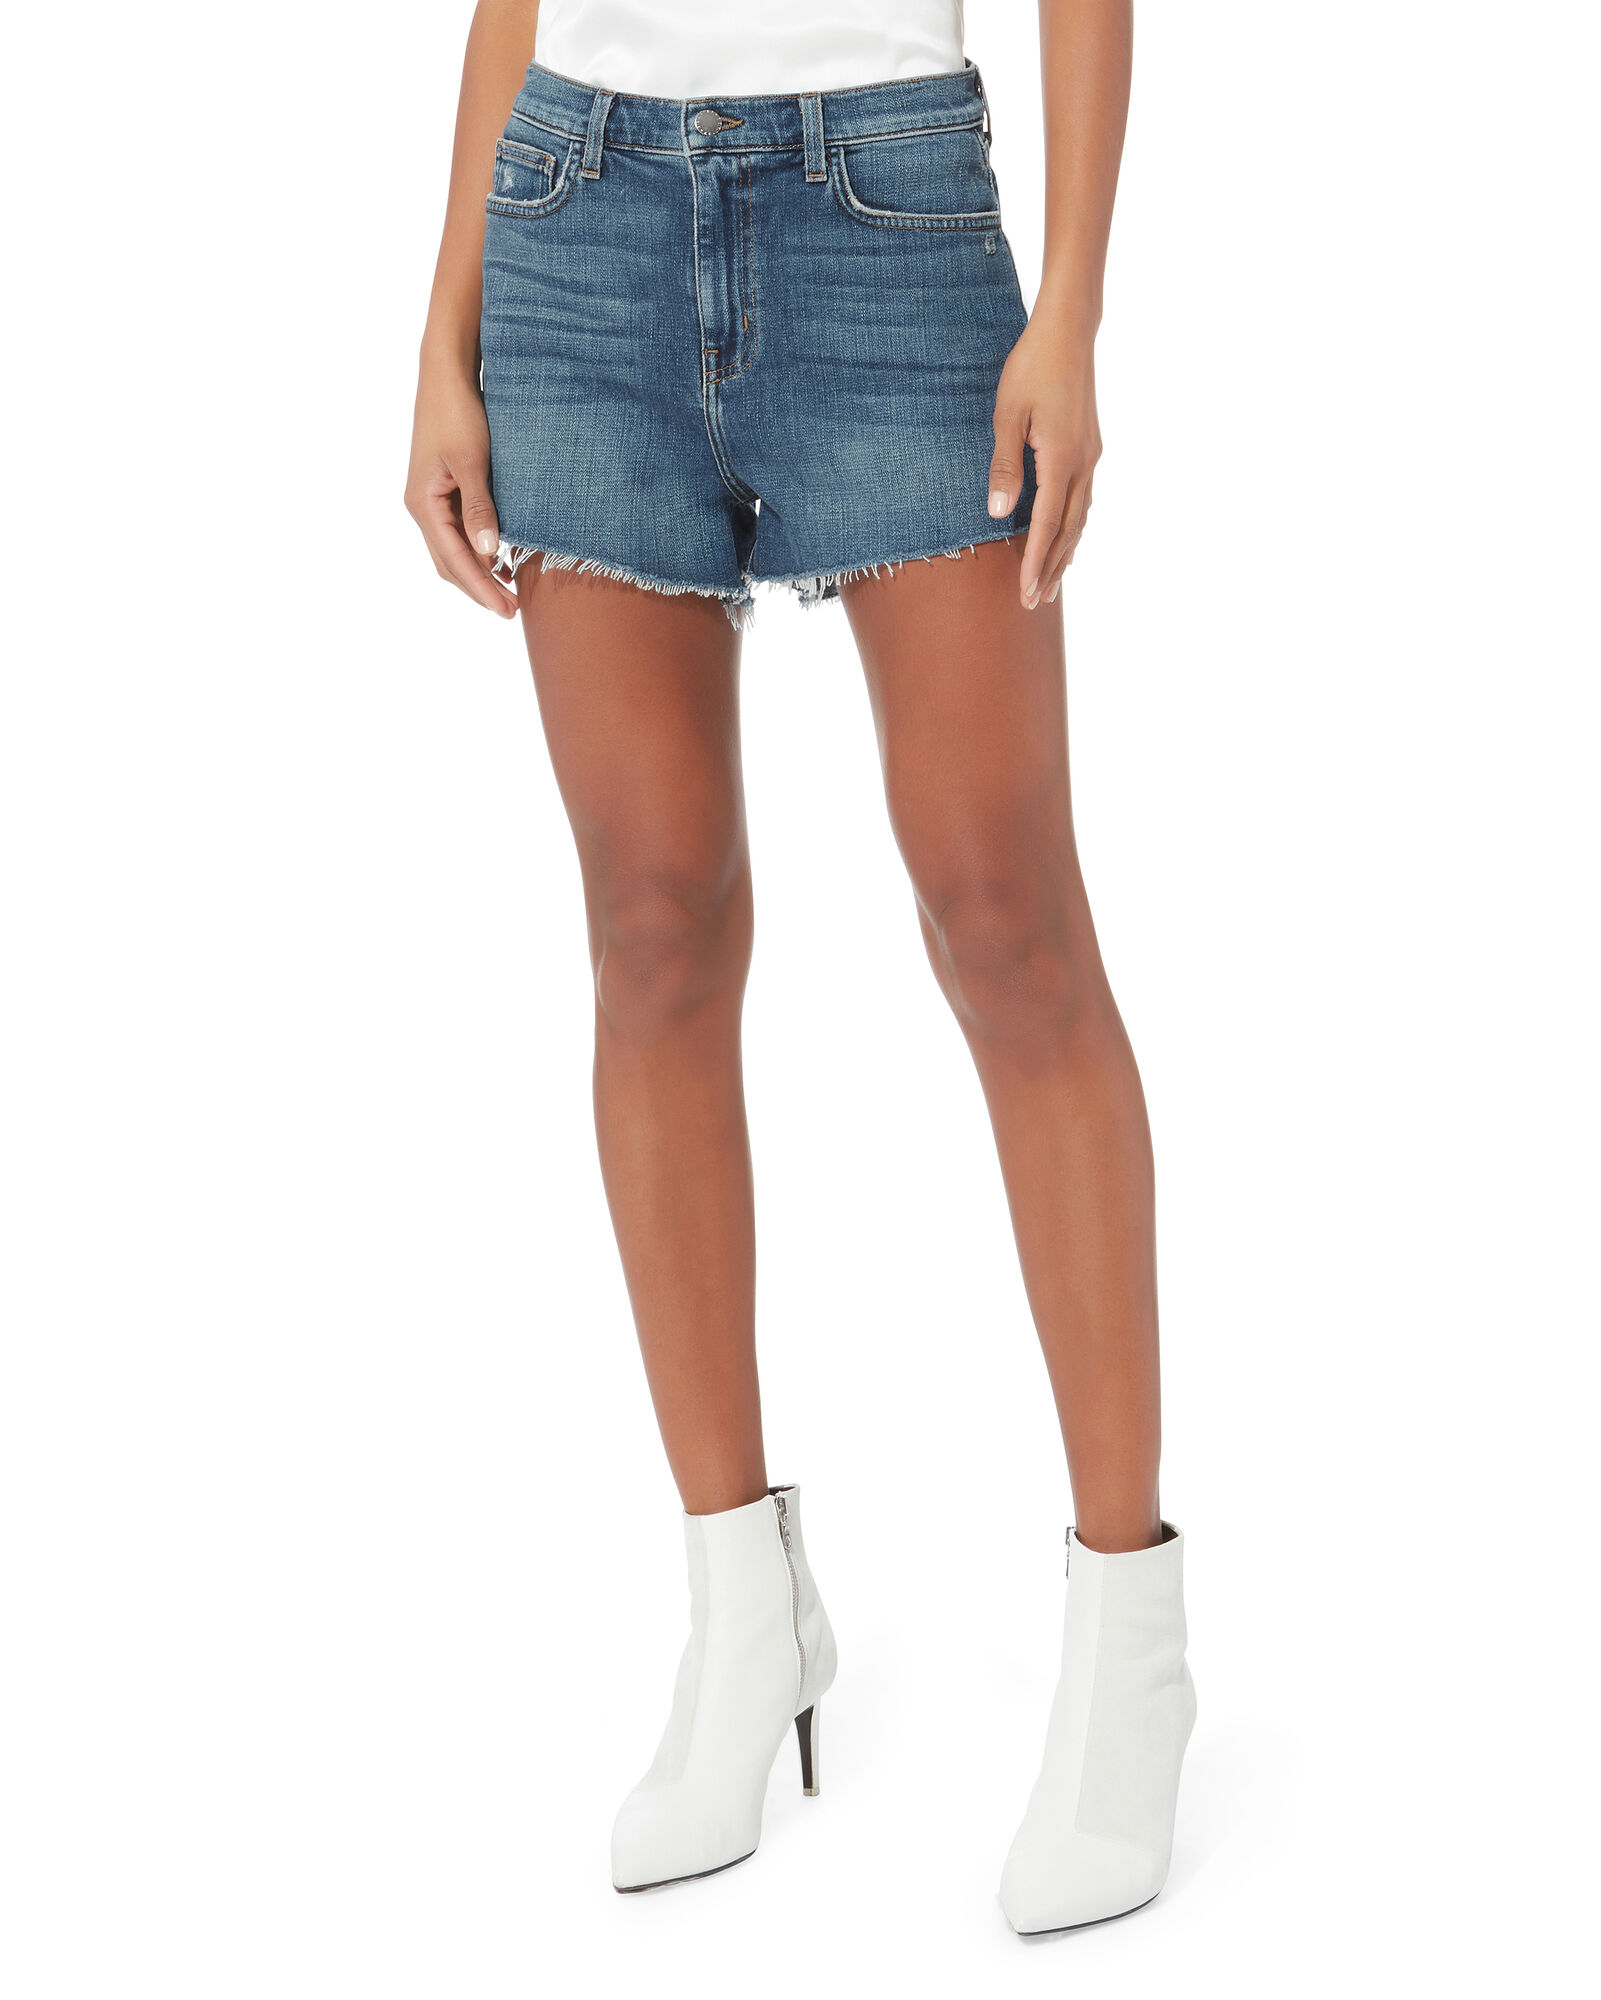 Ryland Cut-Off Denim Shorts, DENIM-DRK, hi-res